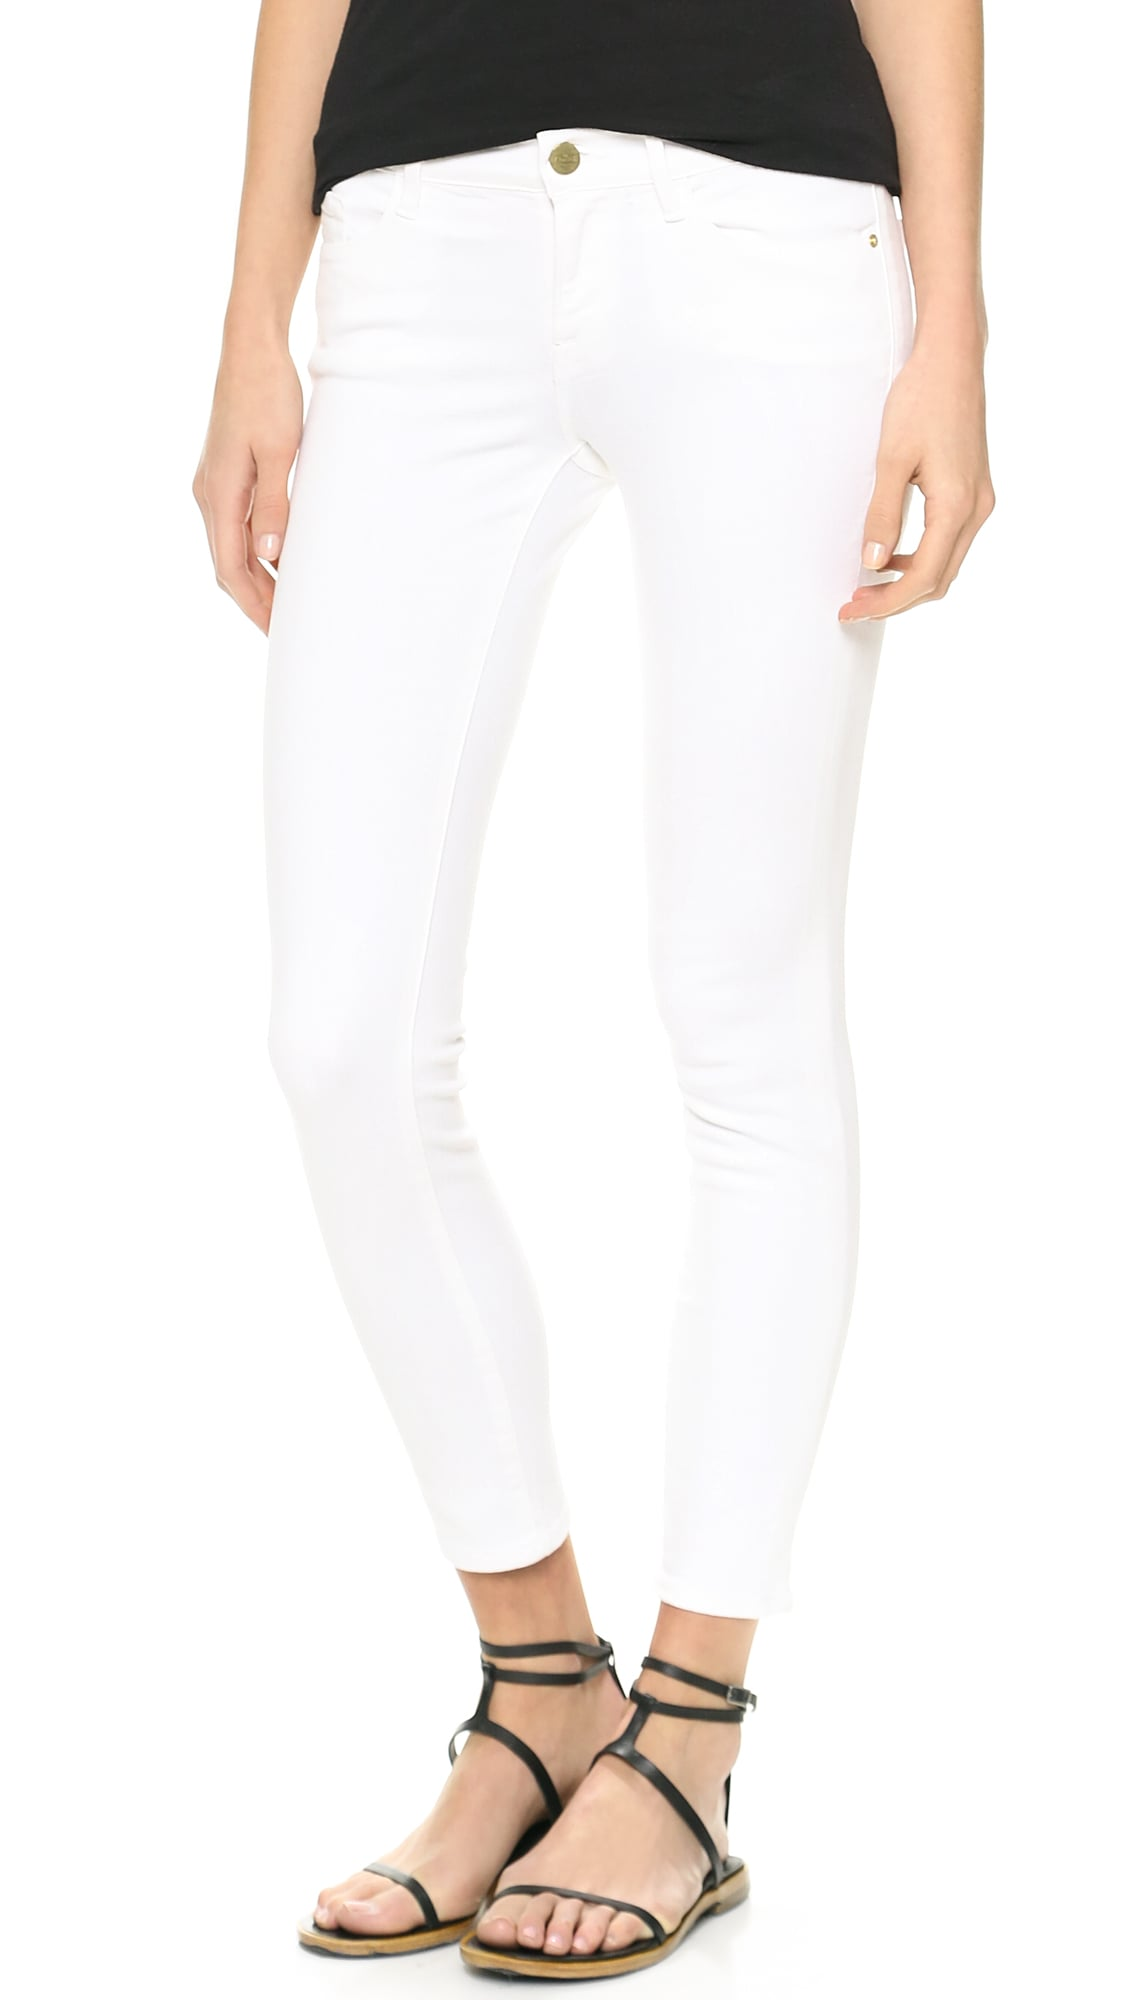 Frame Denim White Jeans | 11 Must-Have Finds From Shopbop's Big ...